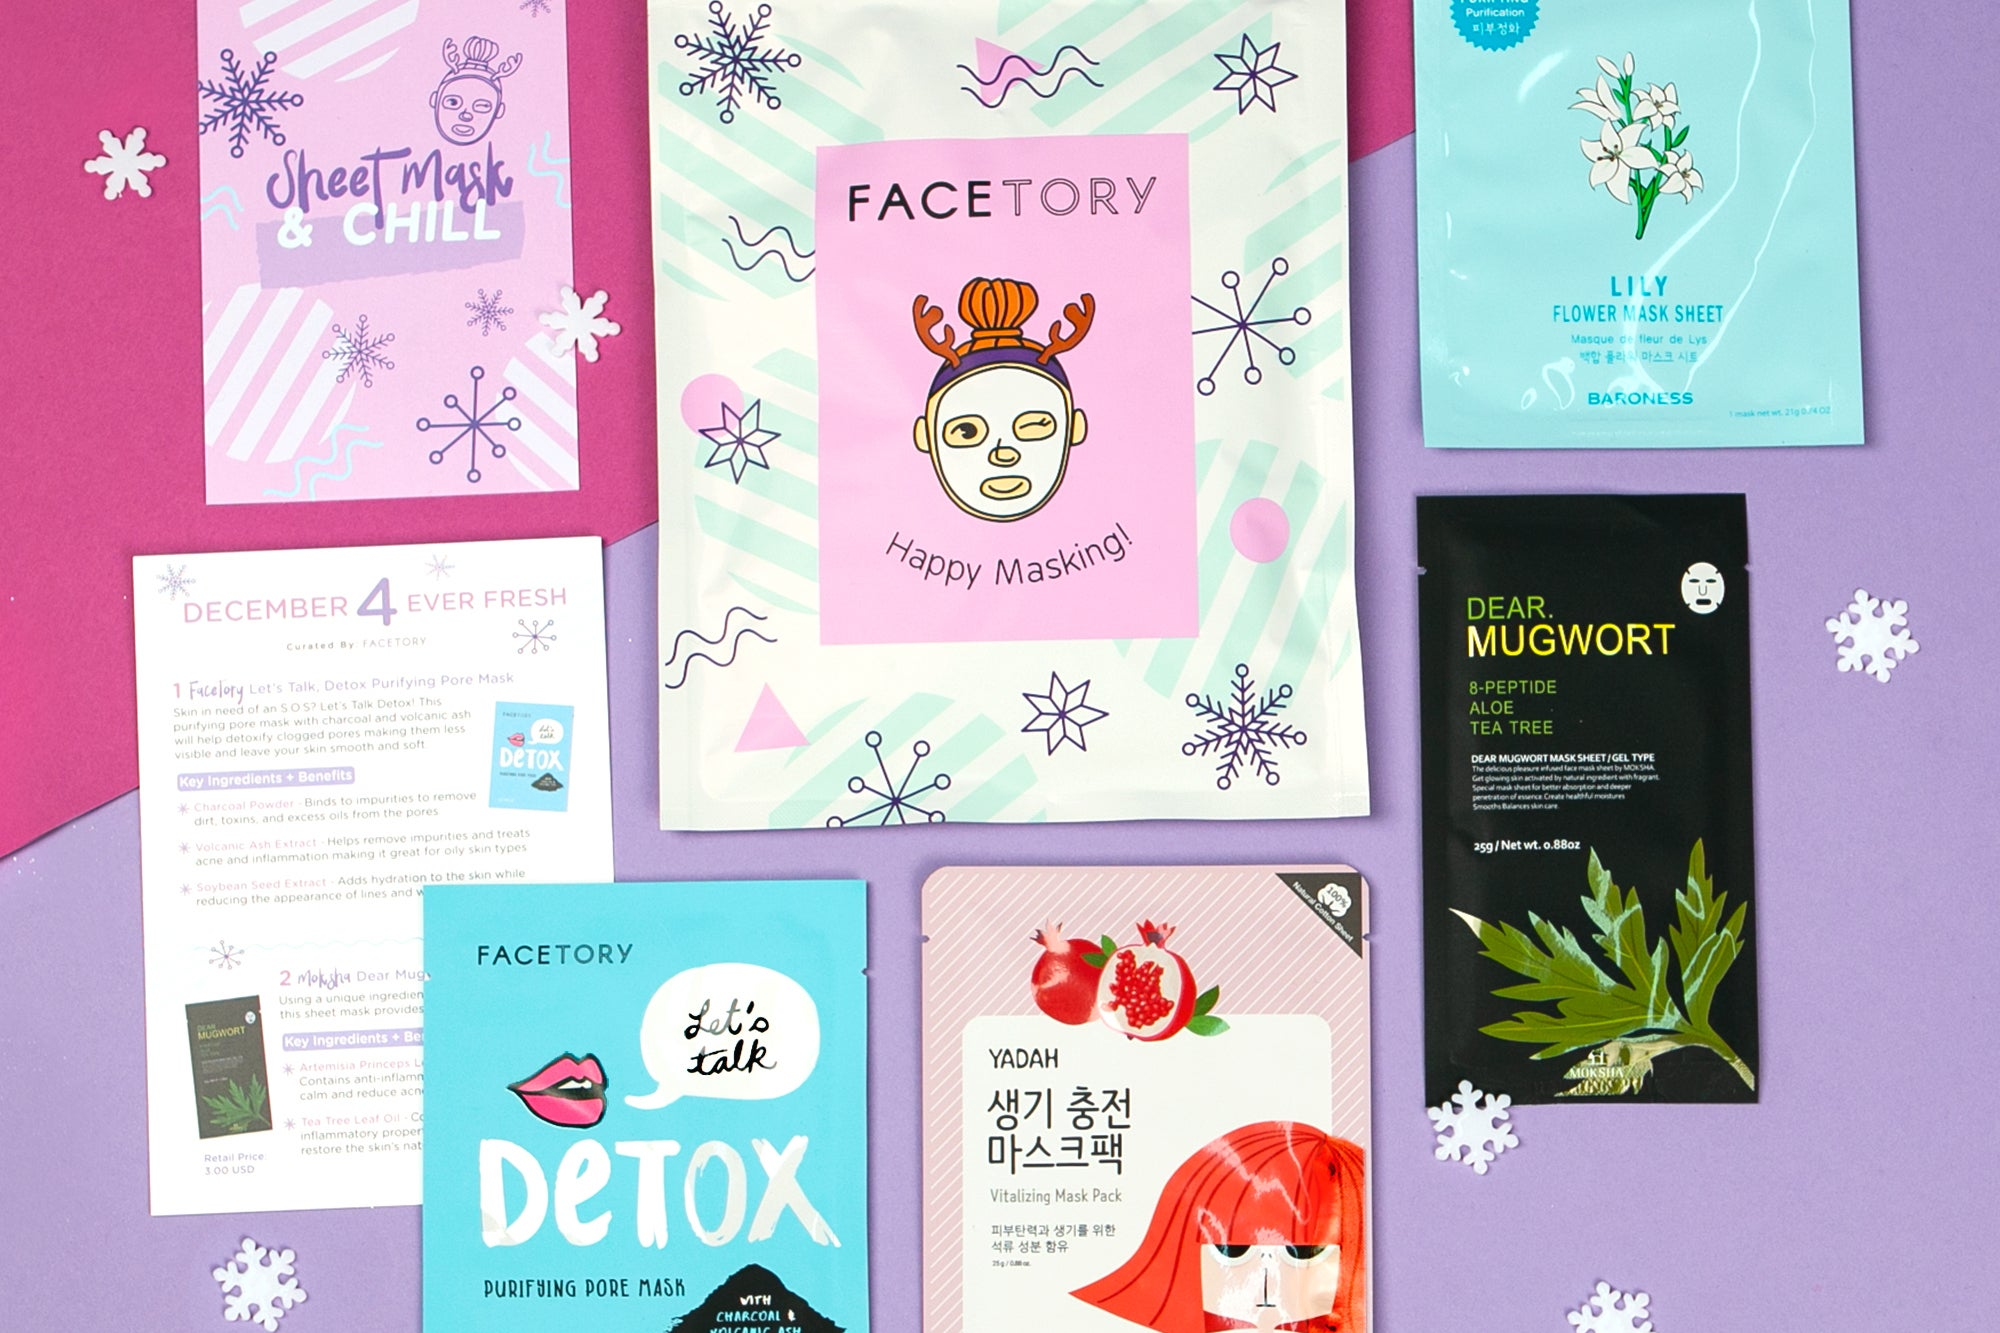 17 Sheet Masks You'll Wonder How You Lived So Long Without Buying